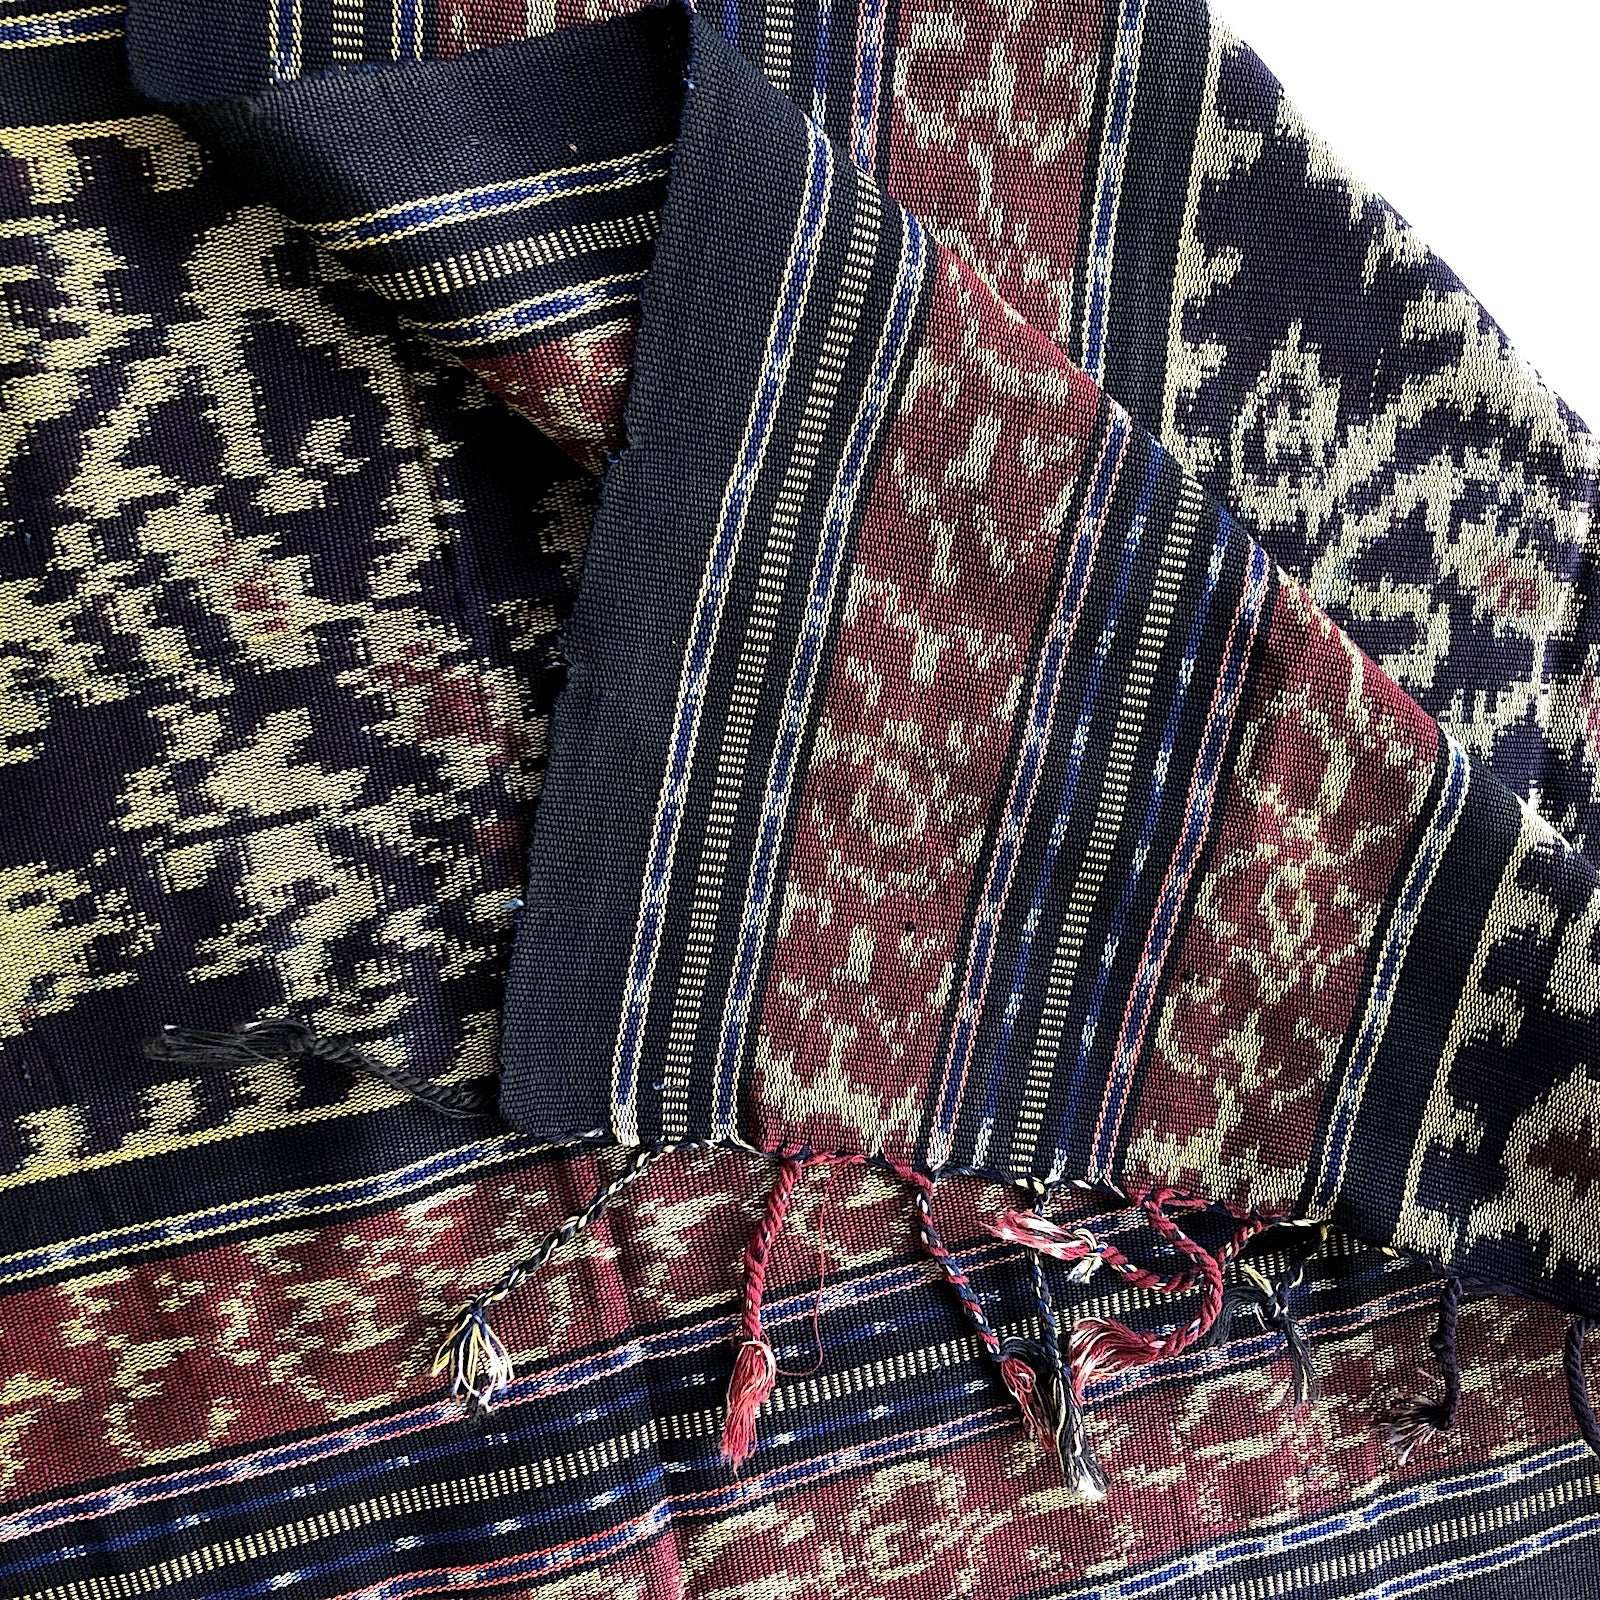 Hand woven ikat runner & Decor fabric - Pallu Design